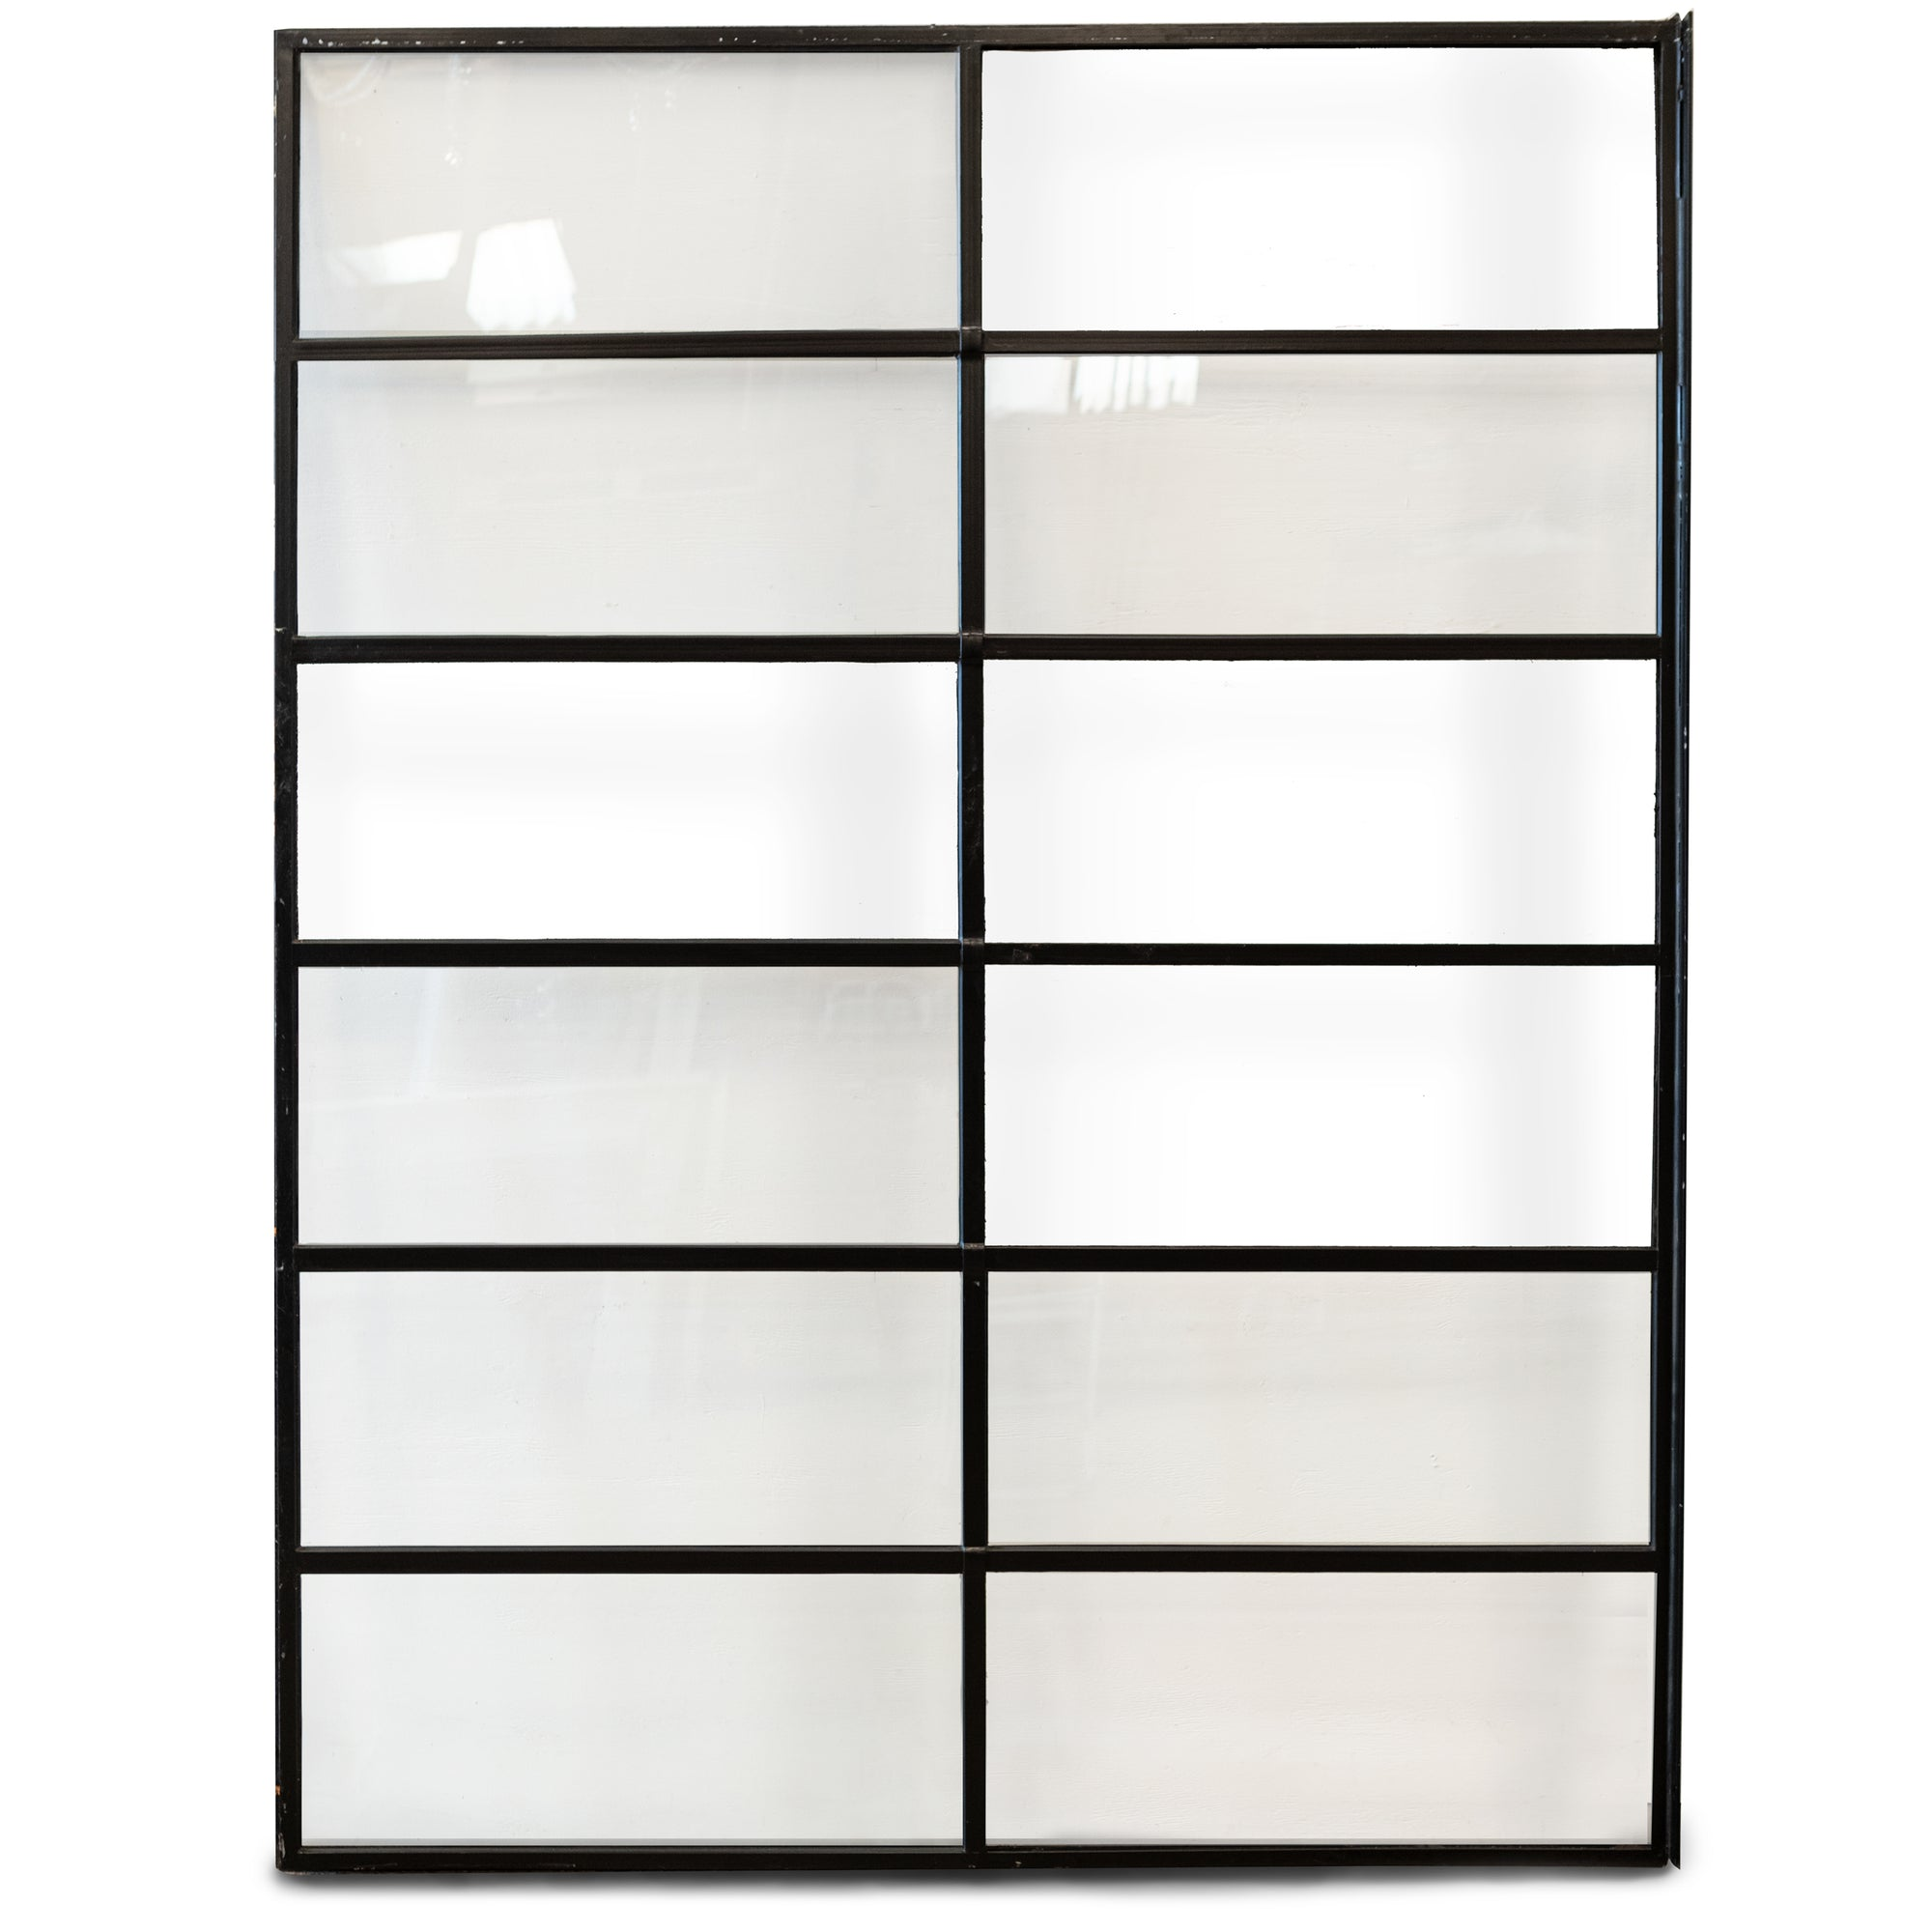 Authentic Crittall Glazed Panels |  Black Steel Frame (4 Available) | The Architectural Forum